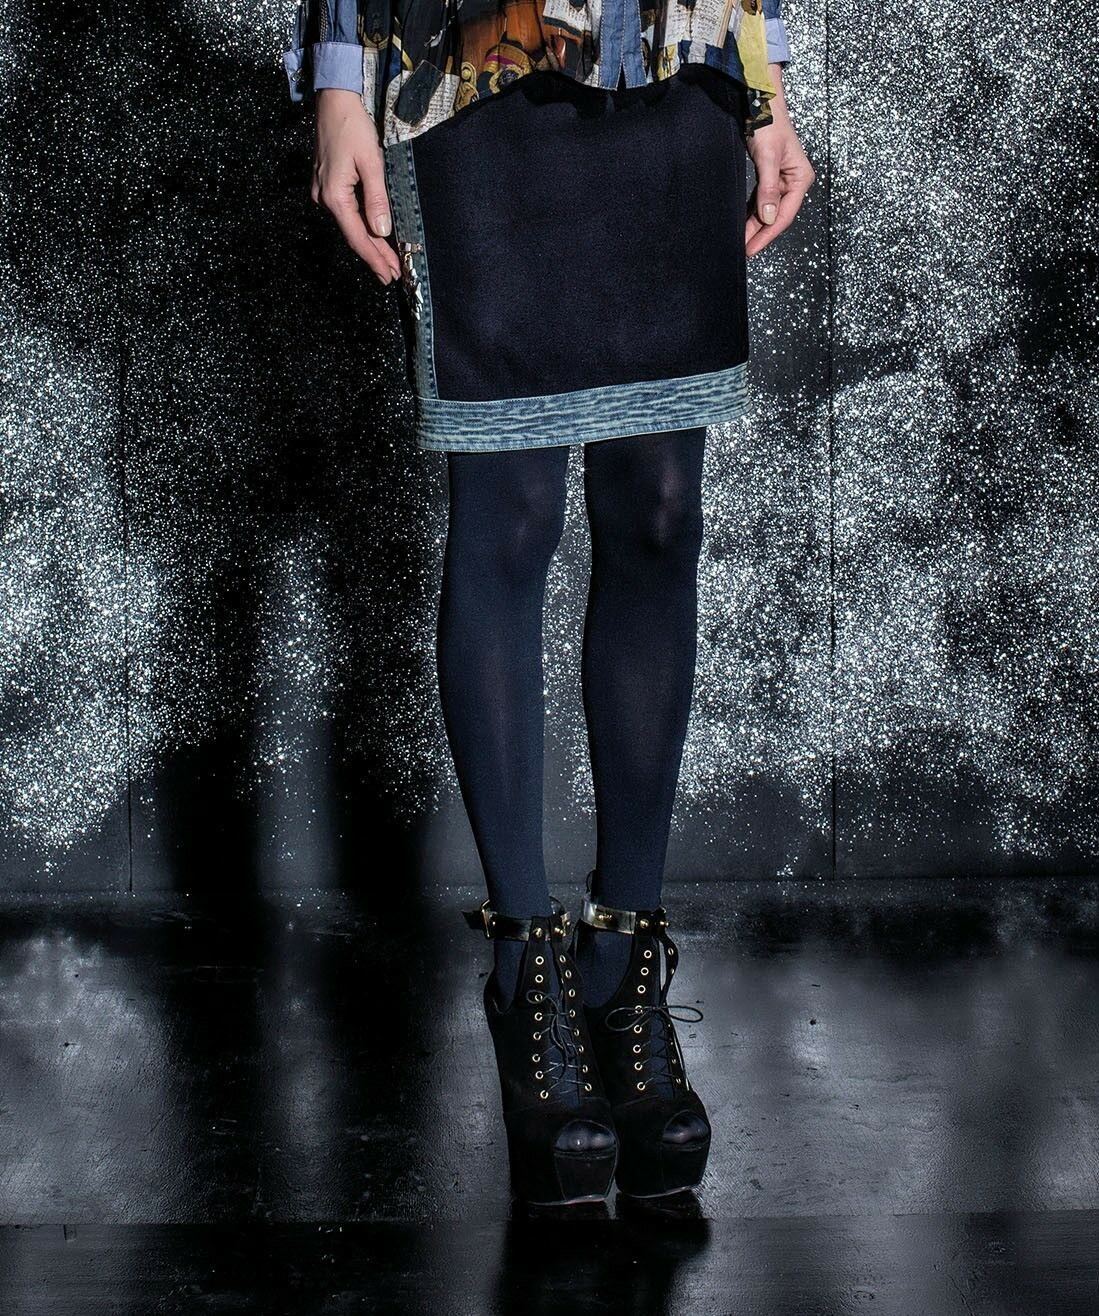 ELISA CAVALETTI Rock Skirt Denim Ingiallito Gr. M Herbst Winter 2016 2017